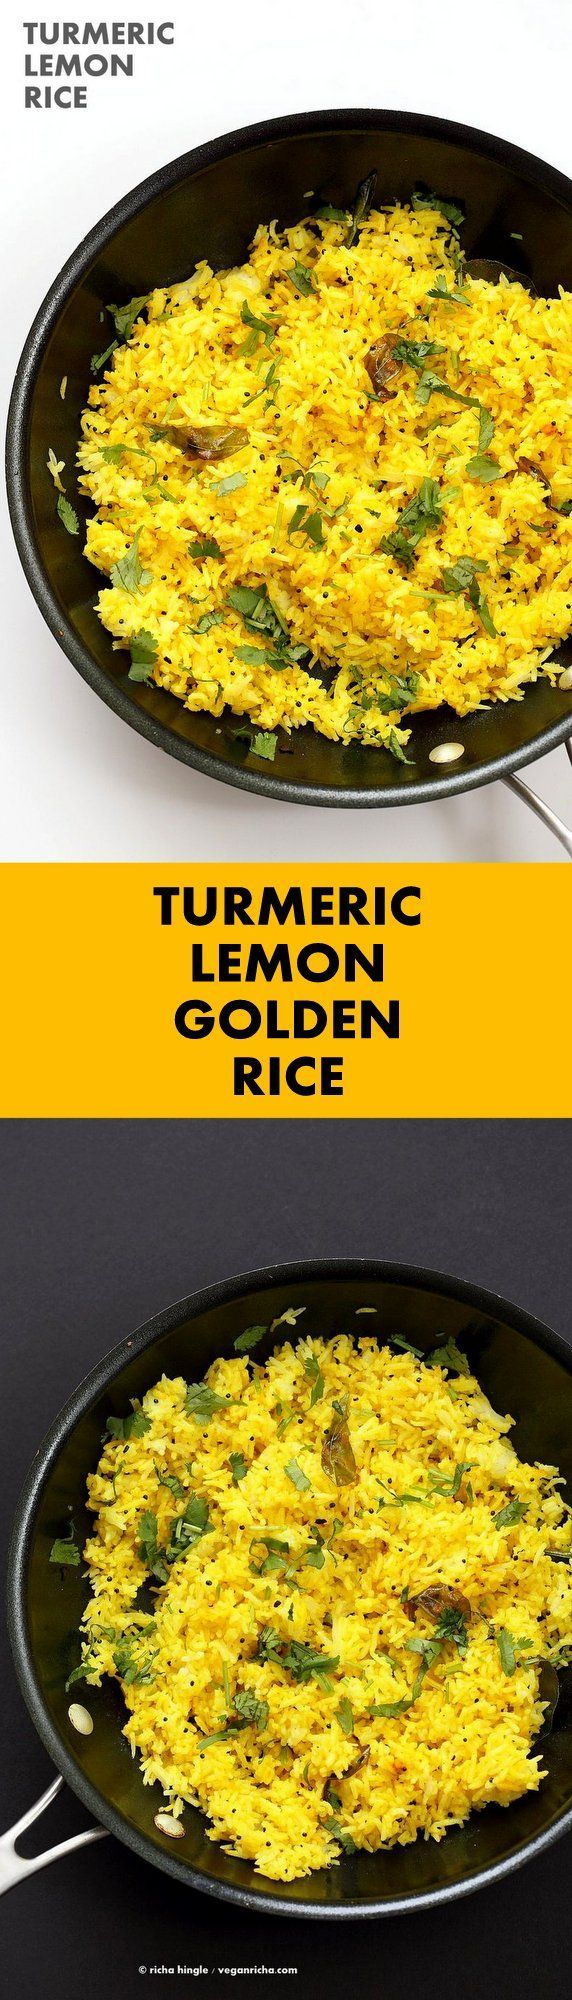 Turmeric Lemon Rice Recipe. Indian Golden Rice with turmeric, lemon and mustard…